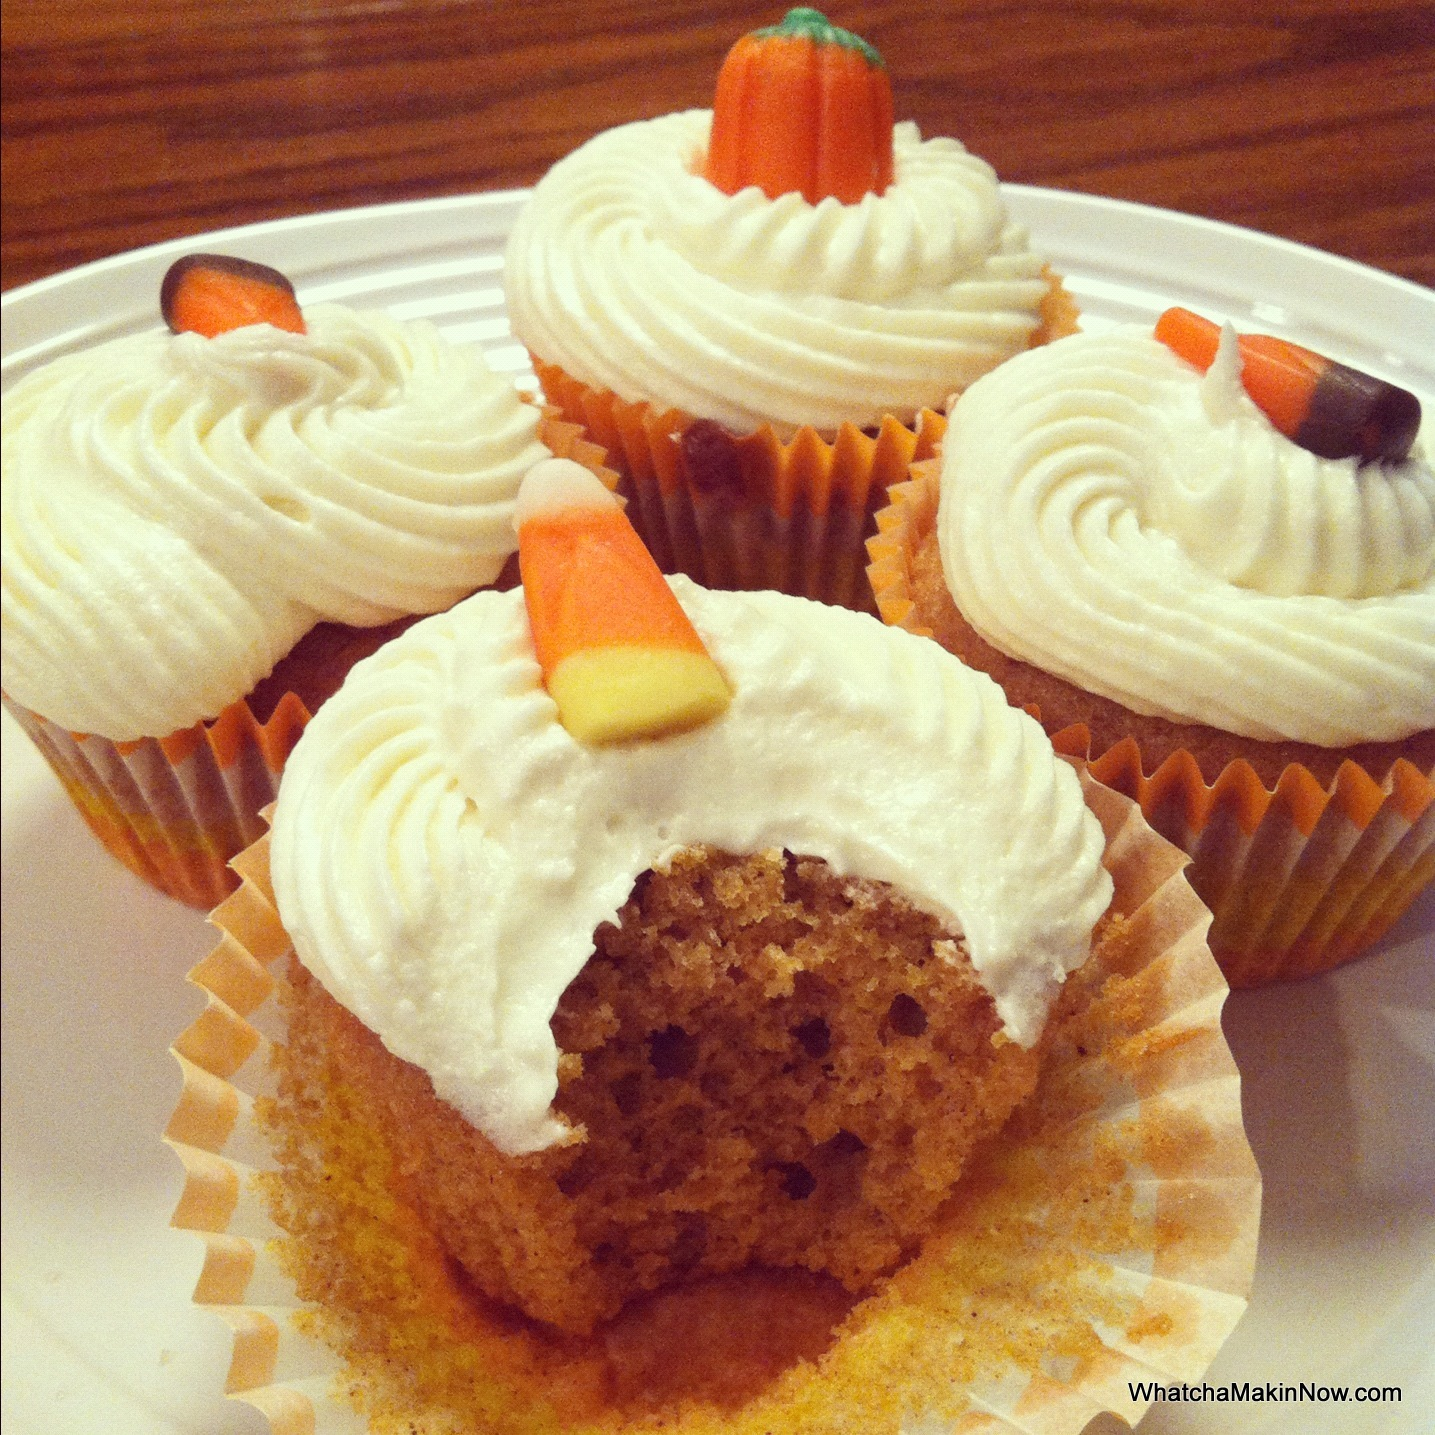 Whatcha Makin' Now?: Pumpkin Cupcakes with Cream Cheese ...